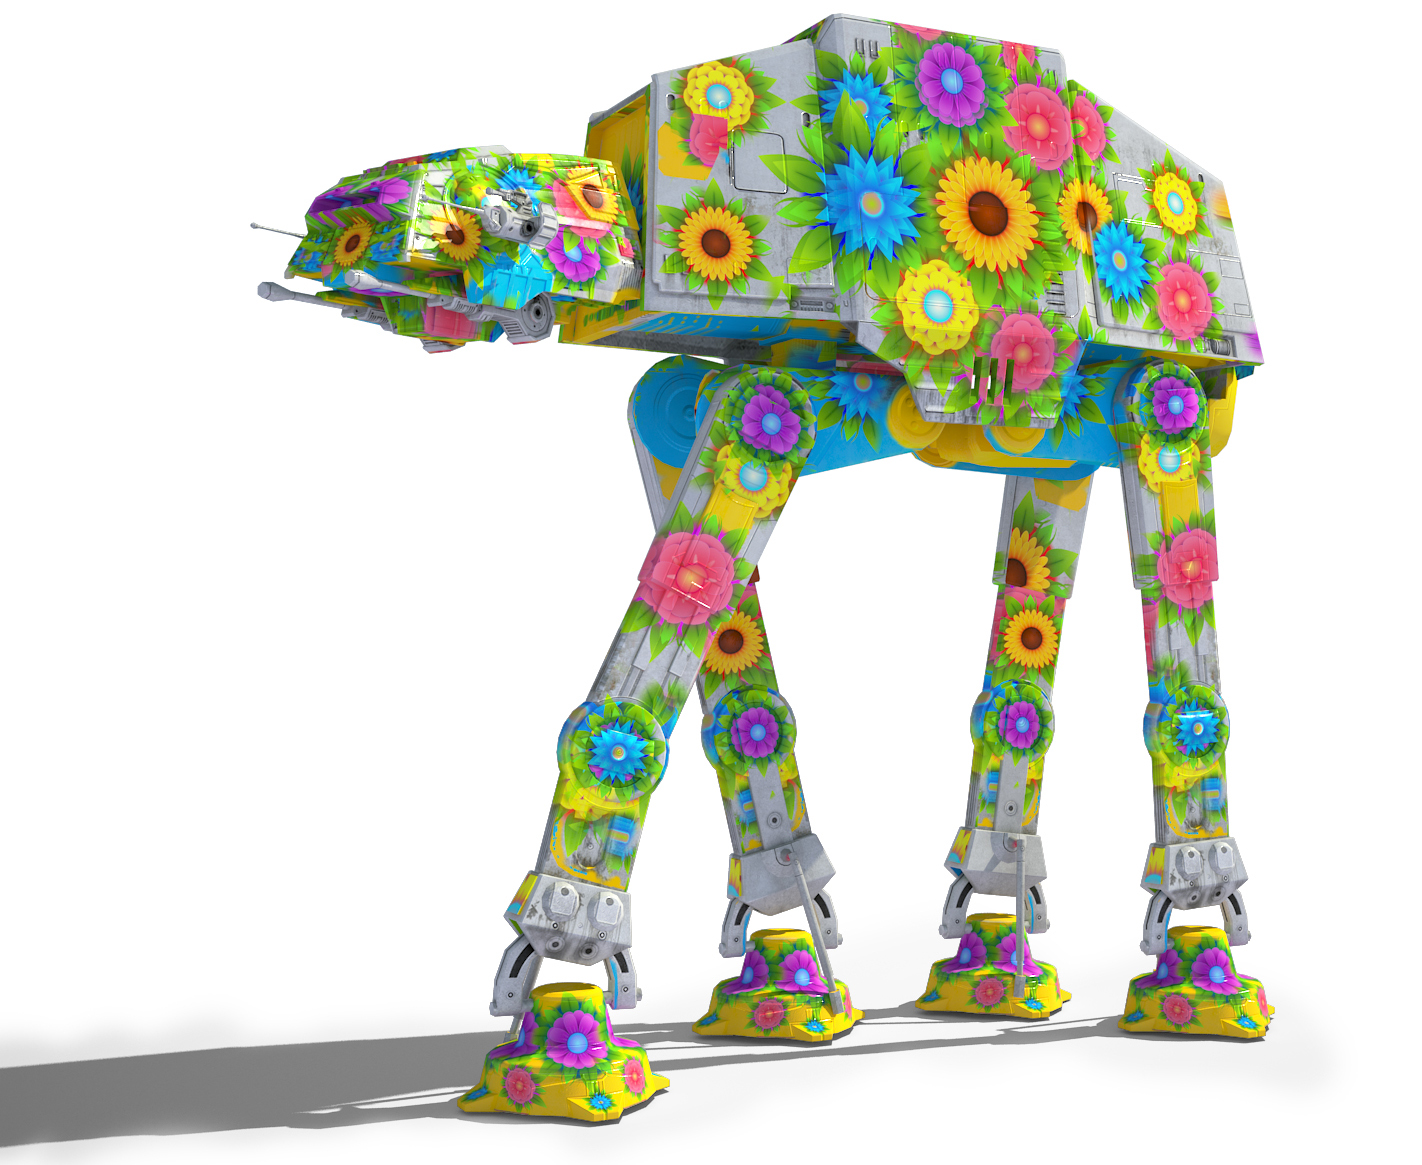 Game Ready Star Wars AT-AT Imperial Walker 3D model - Flowery skin